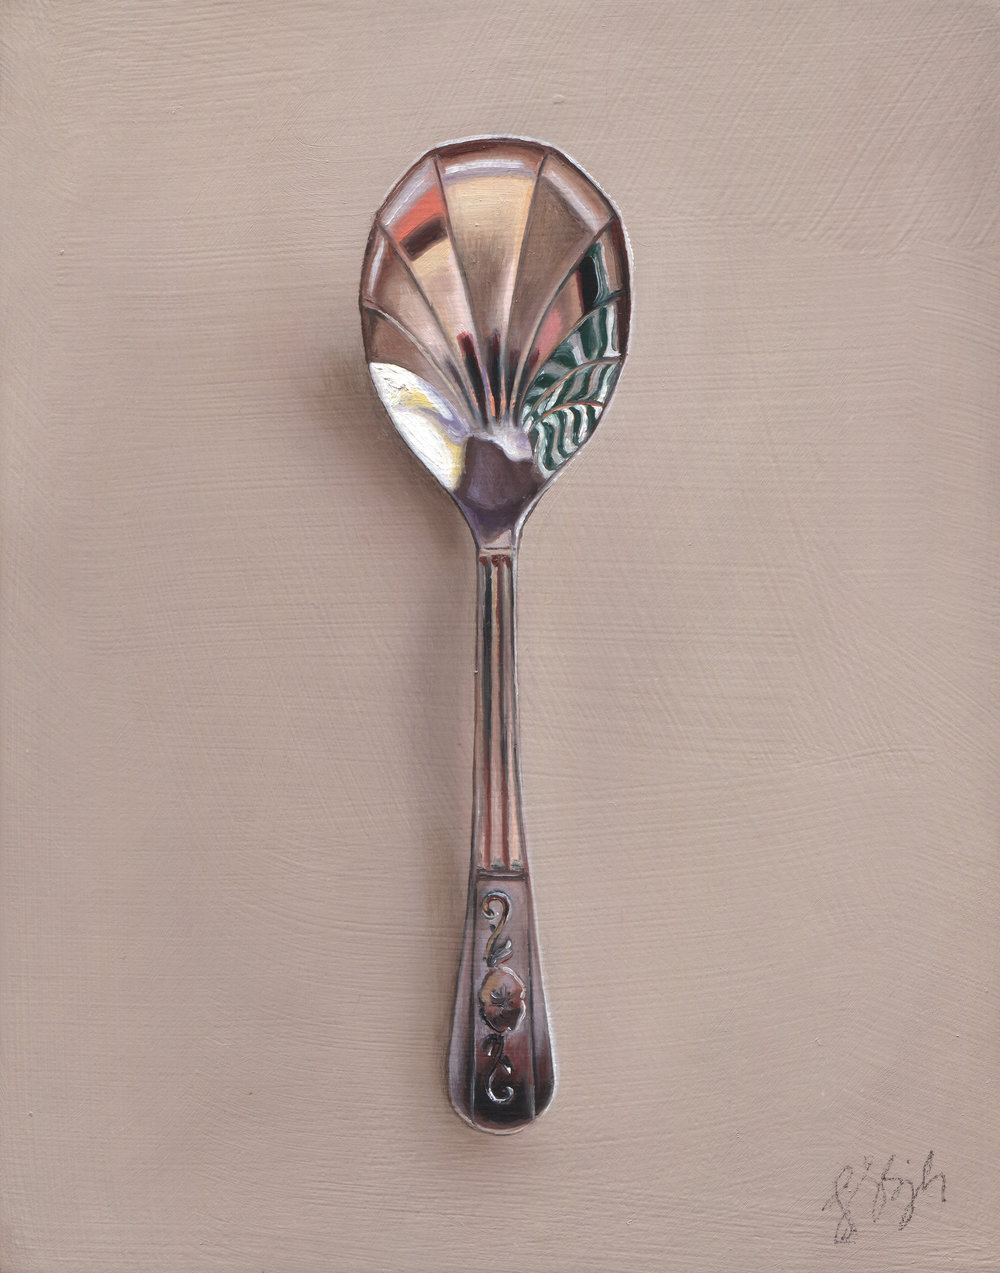 "Silver Spoon #95, The Ringmaster  Oil on panel, 2015. 7x5.5"" Available at  George Billis Gallery,  New York"